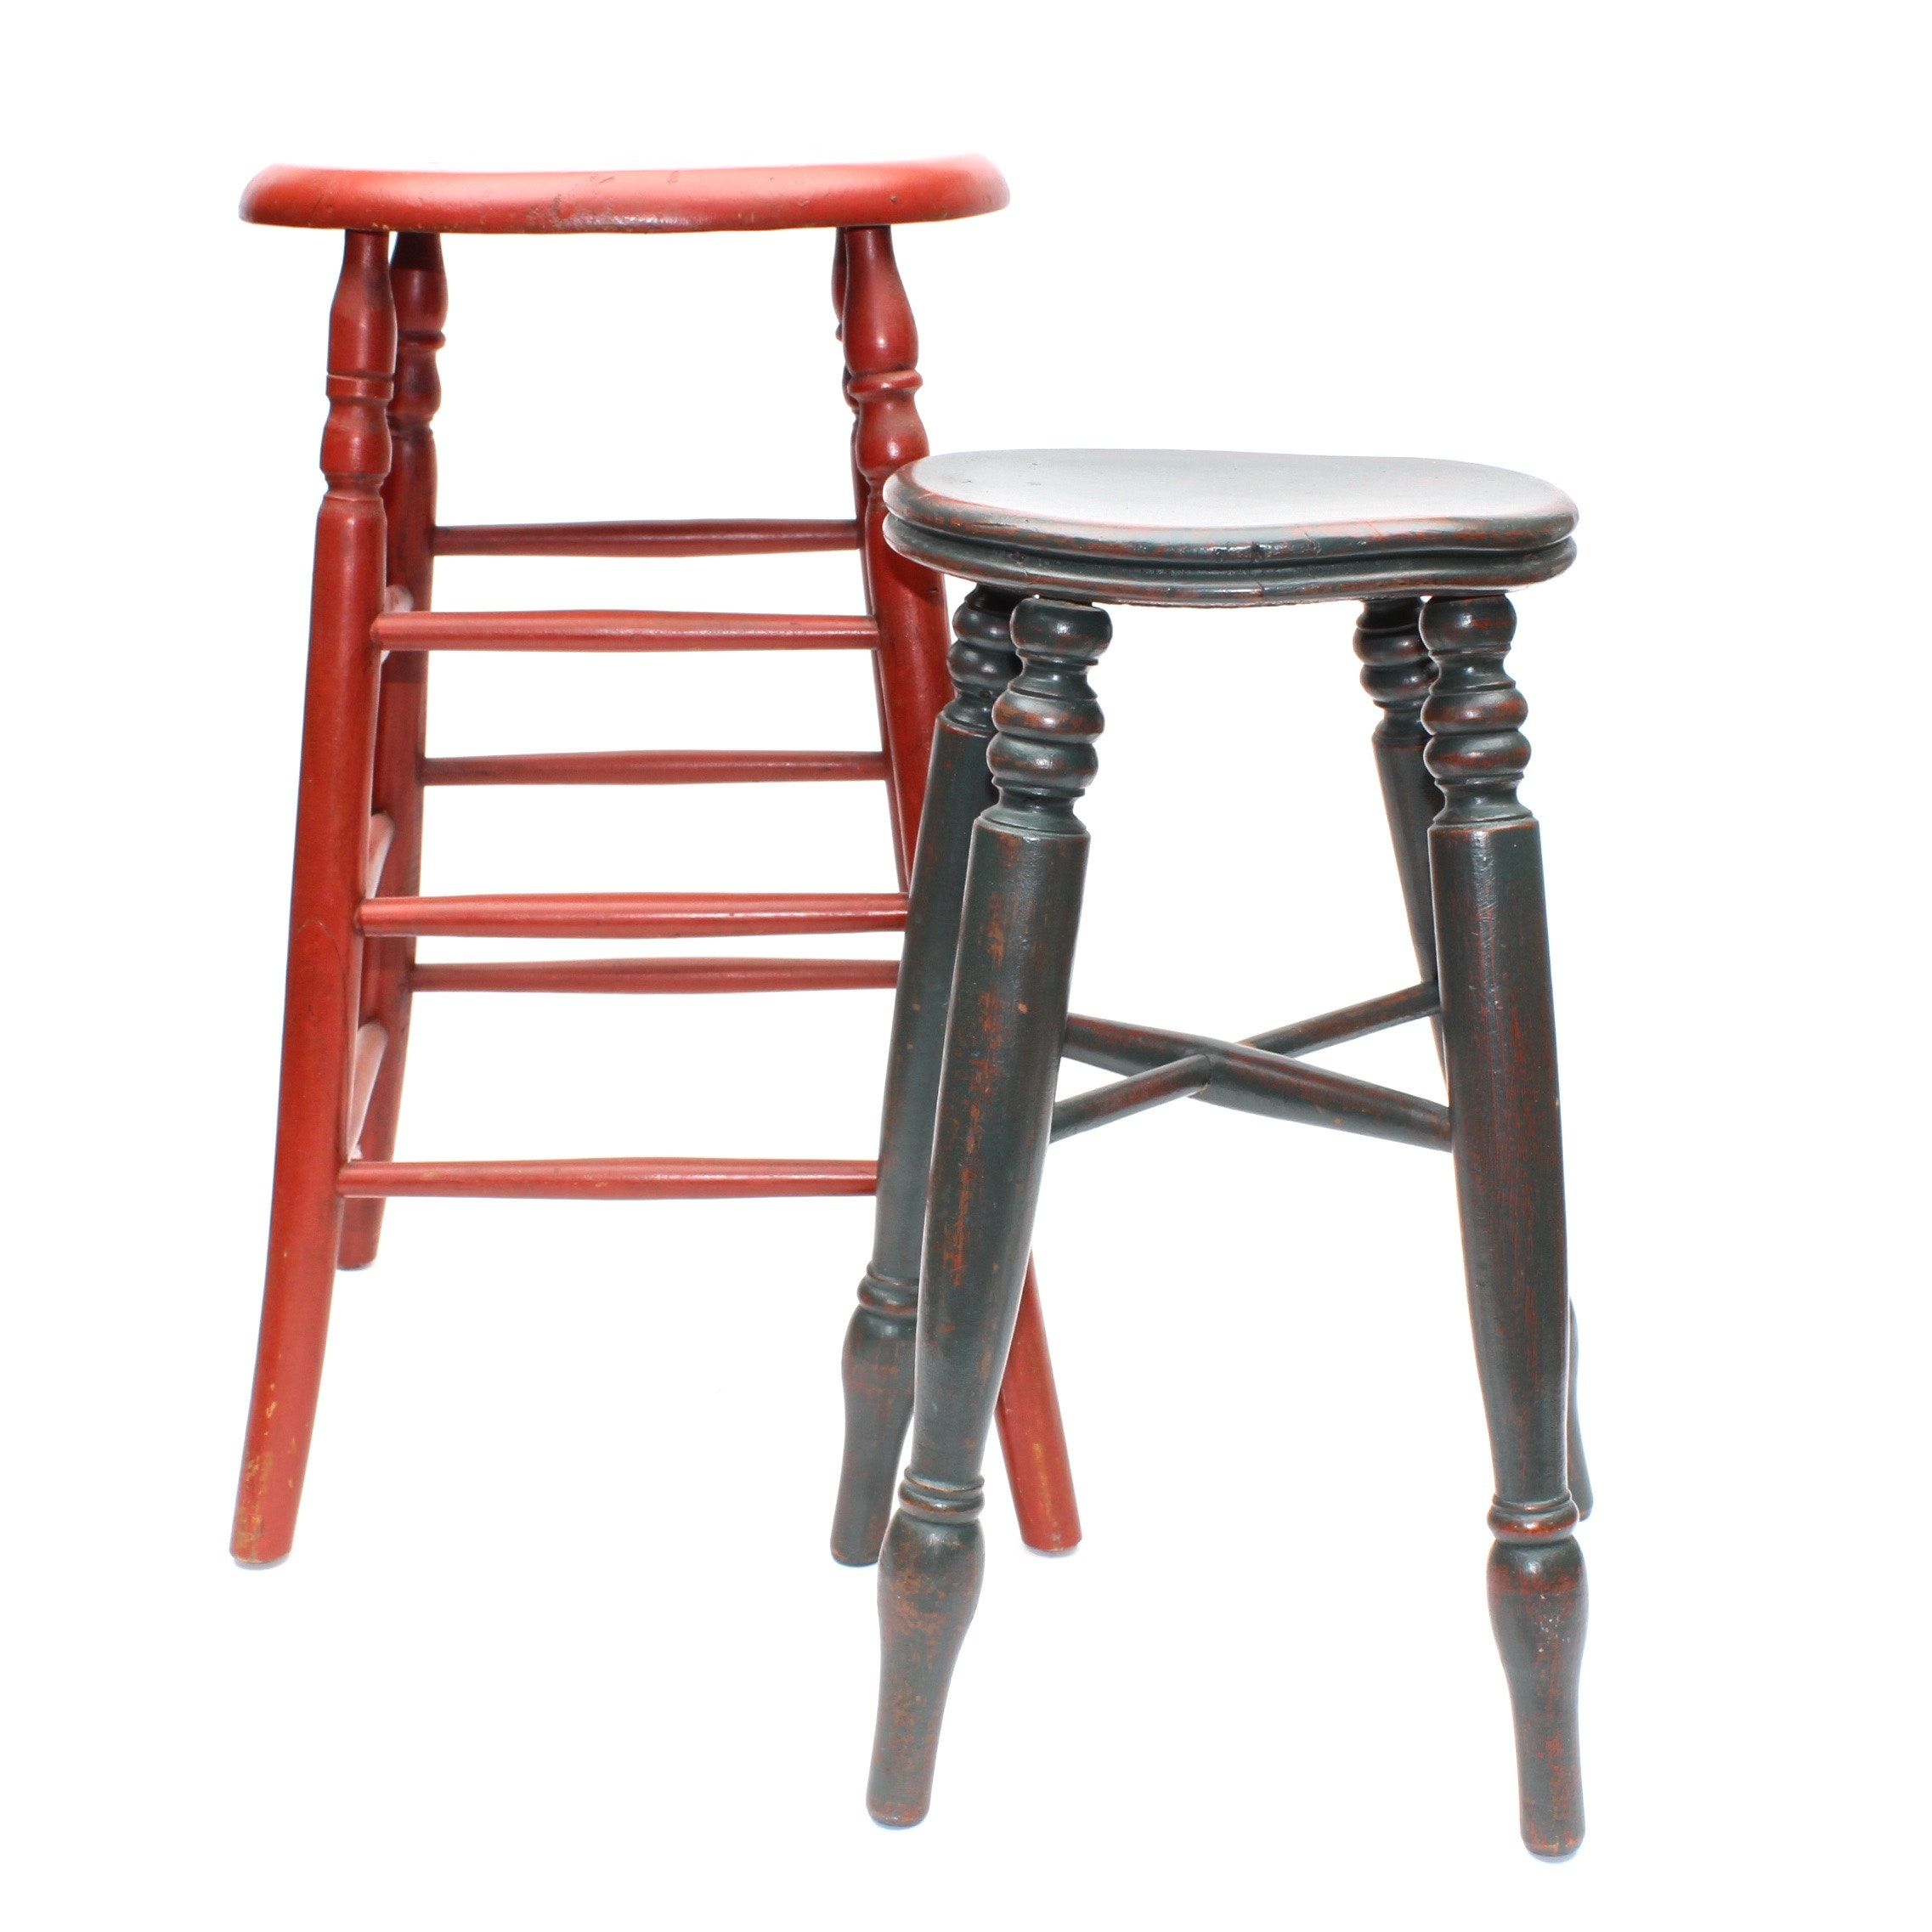 Two Vintage Hand Painted Wooden Stools